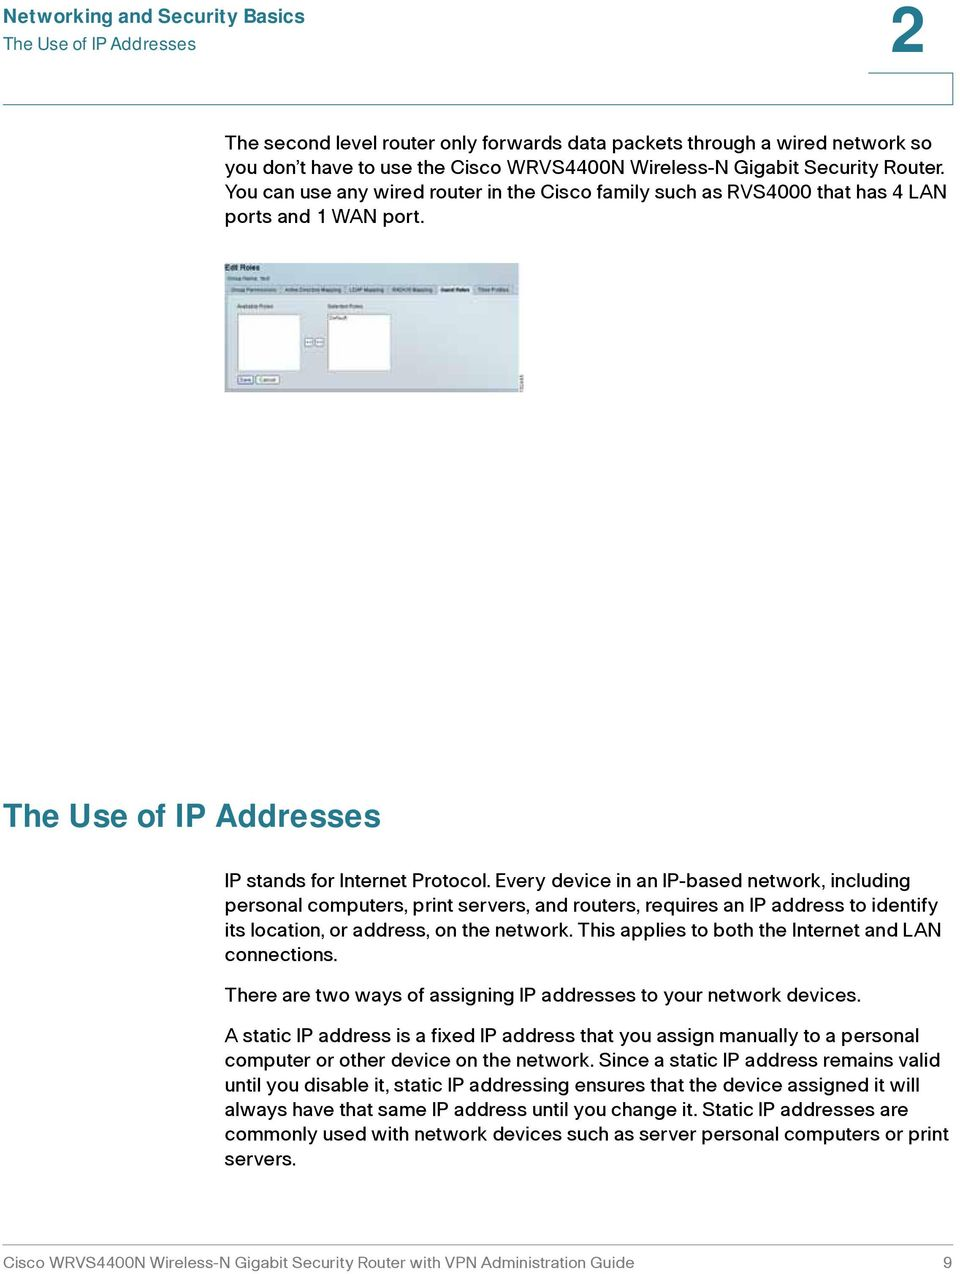 Every device in an IP-based network, including personal computers, print servers, and routers, requires an IP address to identify its location, or address, on the network.